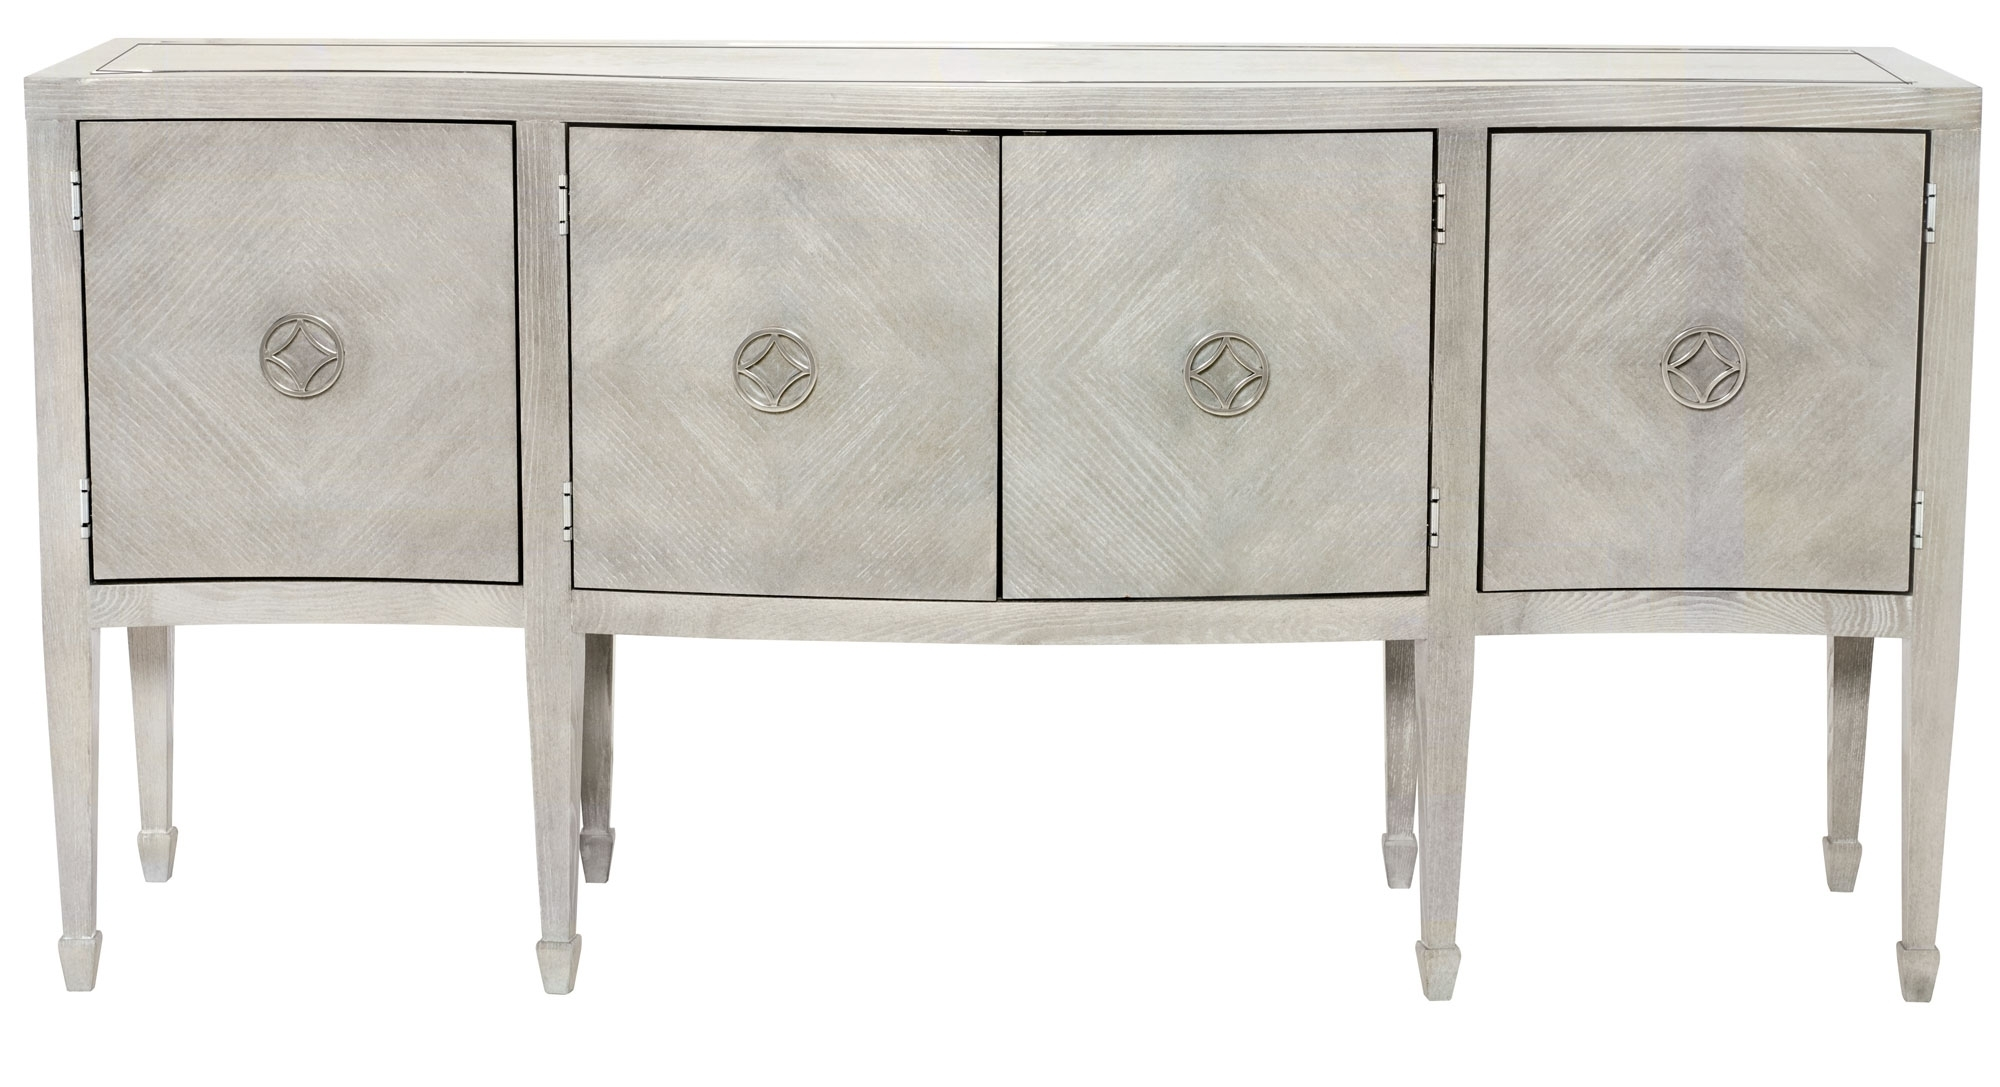 Cabinets, Consoles & Sofa Tables | Htgt Furniture with regard to Gunmetal Perforated Brass Sideboards (Image 13 of 30)